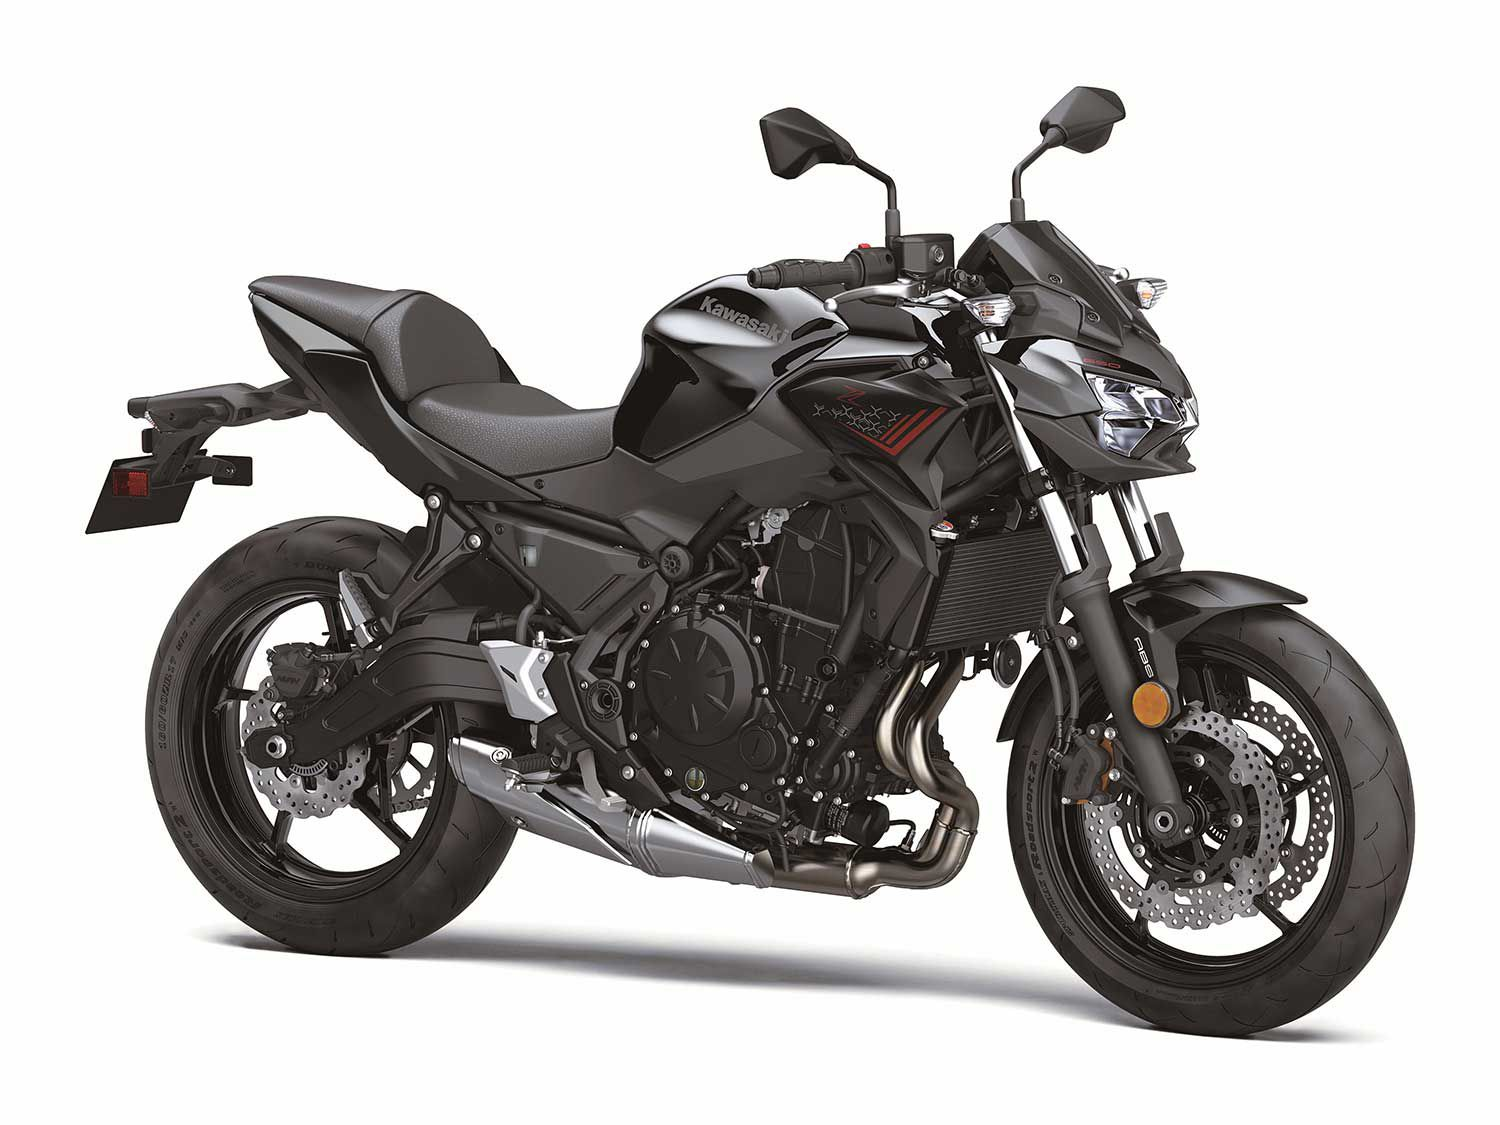 <h2>2020 Suzuki GSX-S1000F</h2> </br> The 2020 Suzuki GSX-S1000F is also powered by the 999cc engine.